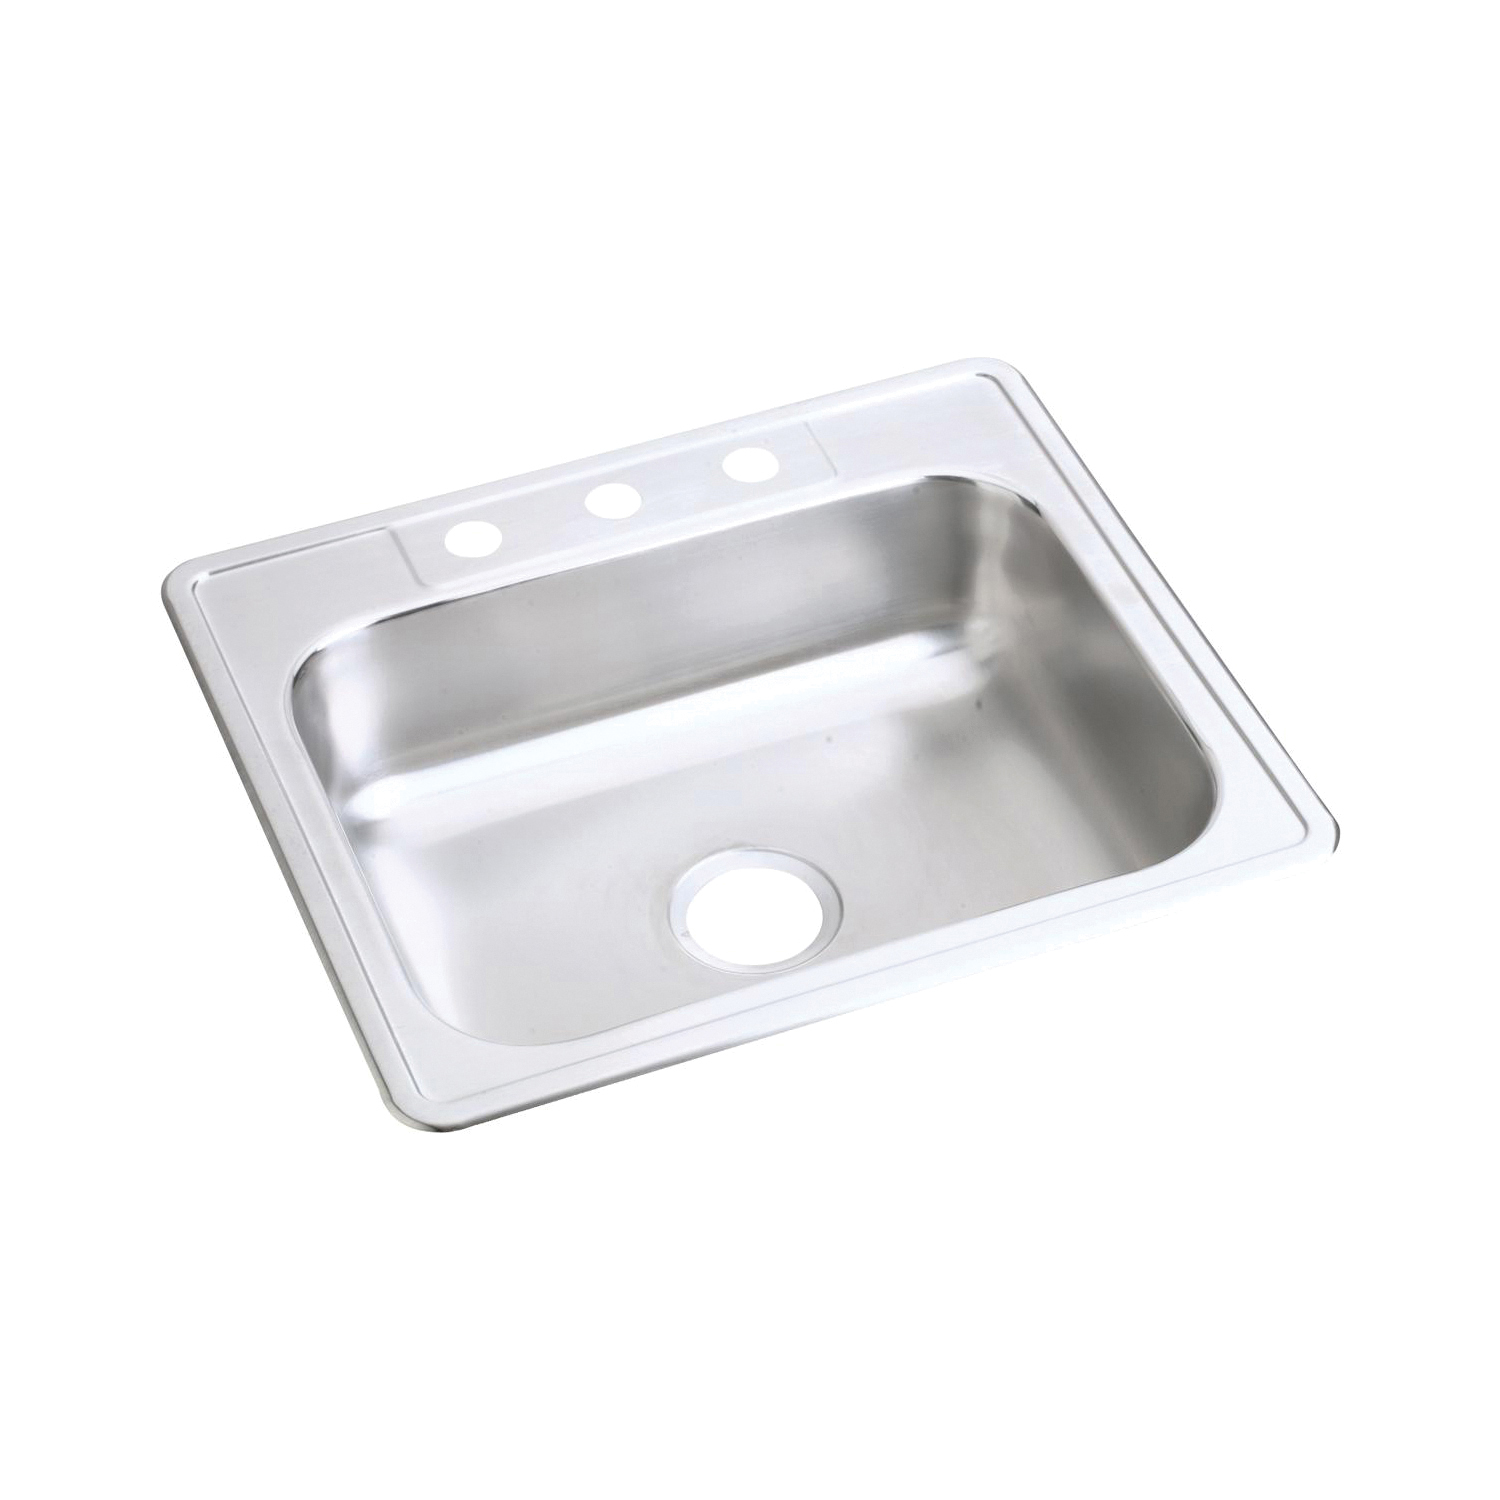 Elkay D125224 Dayton Kitchen Sink, Rectangular, 4 Faucet Holes, 25 in W x 22 in D x 6-9/16 in H, Top Mount, Stainless Steel, Satin